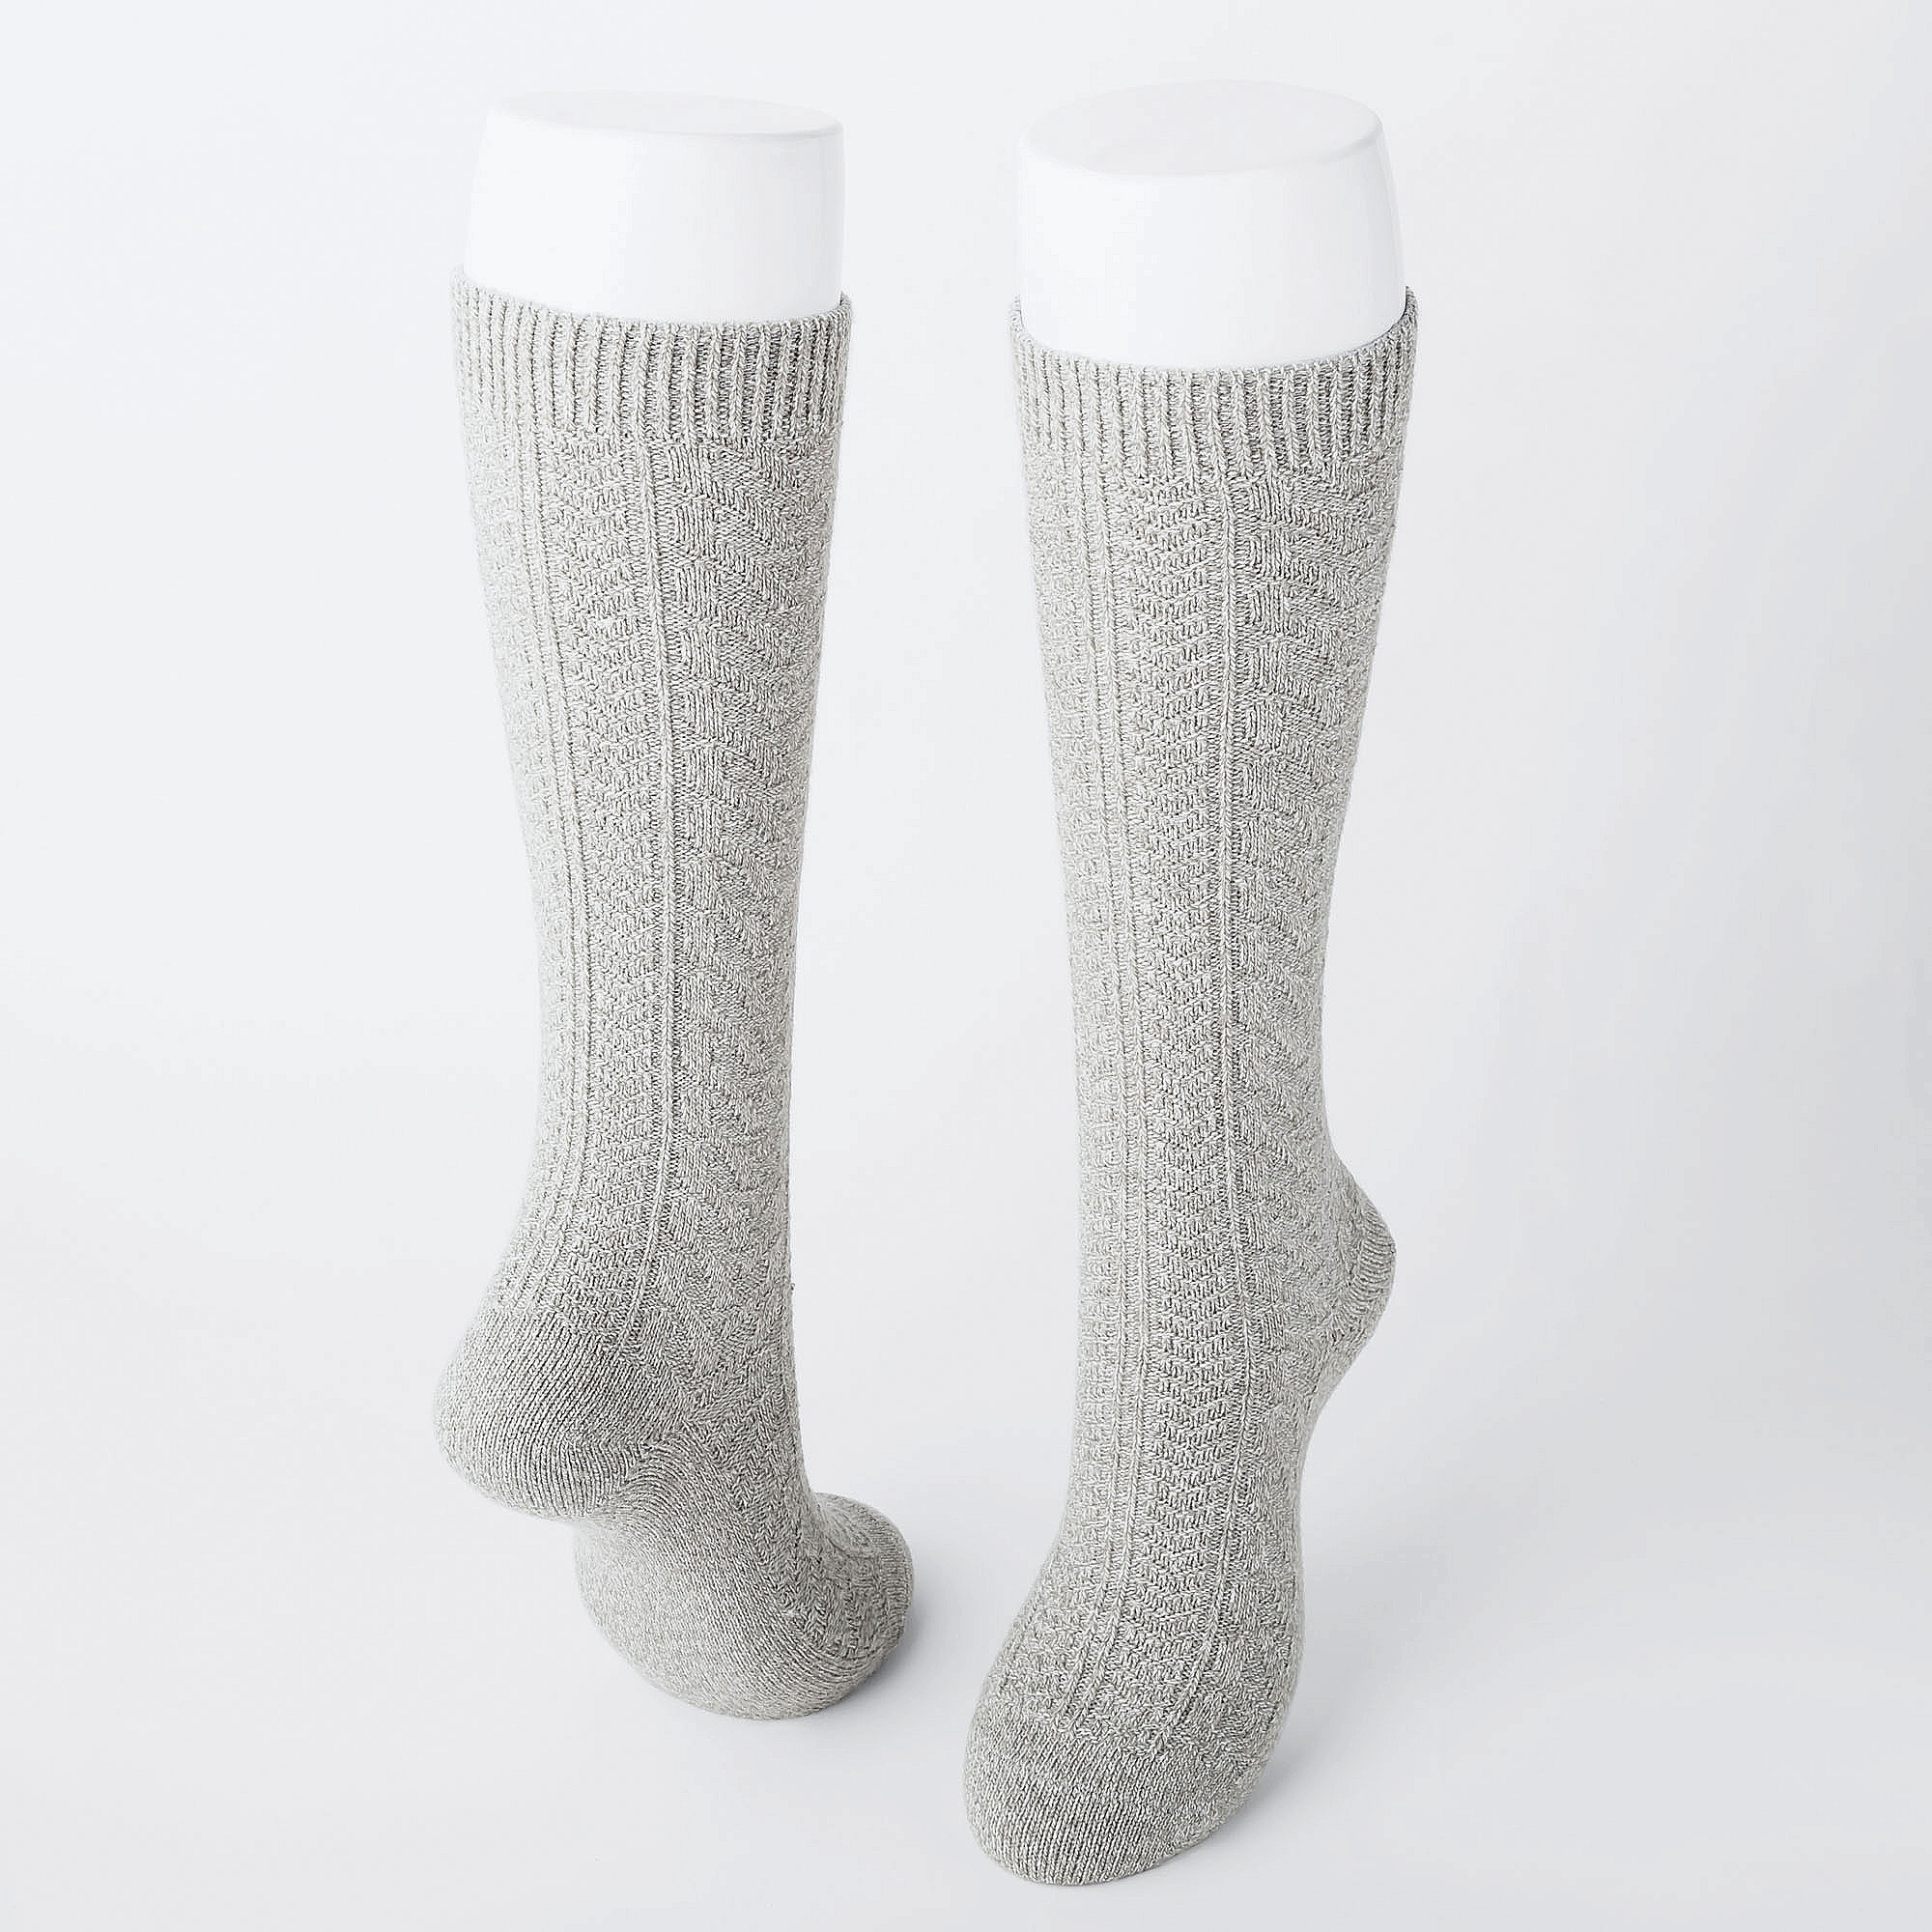 826e68b056f Uniqlo WOMEN HEATTECH KNEE HIGH SOCKS (2 PAIRS CABLE) at £9.9